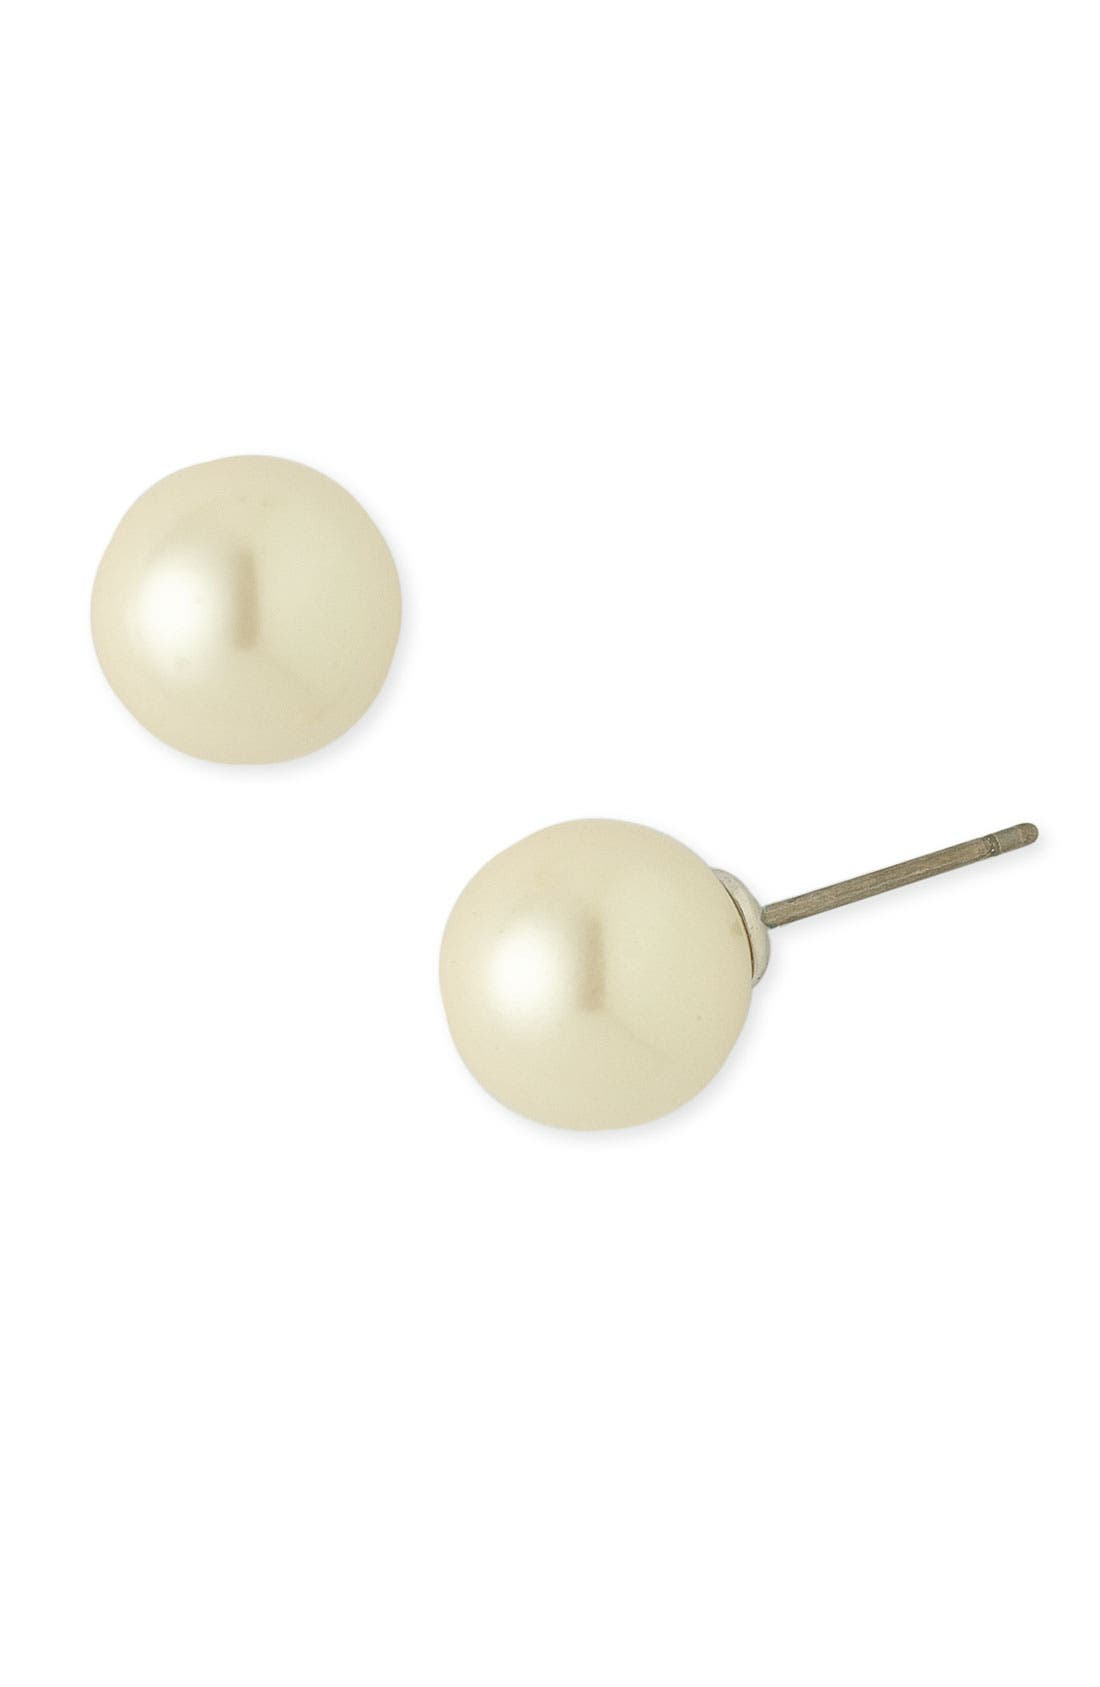 Main Image - Nordstrom 10mm Glass Pearl Stud Earrings